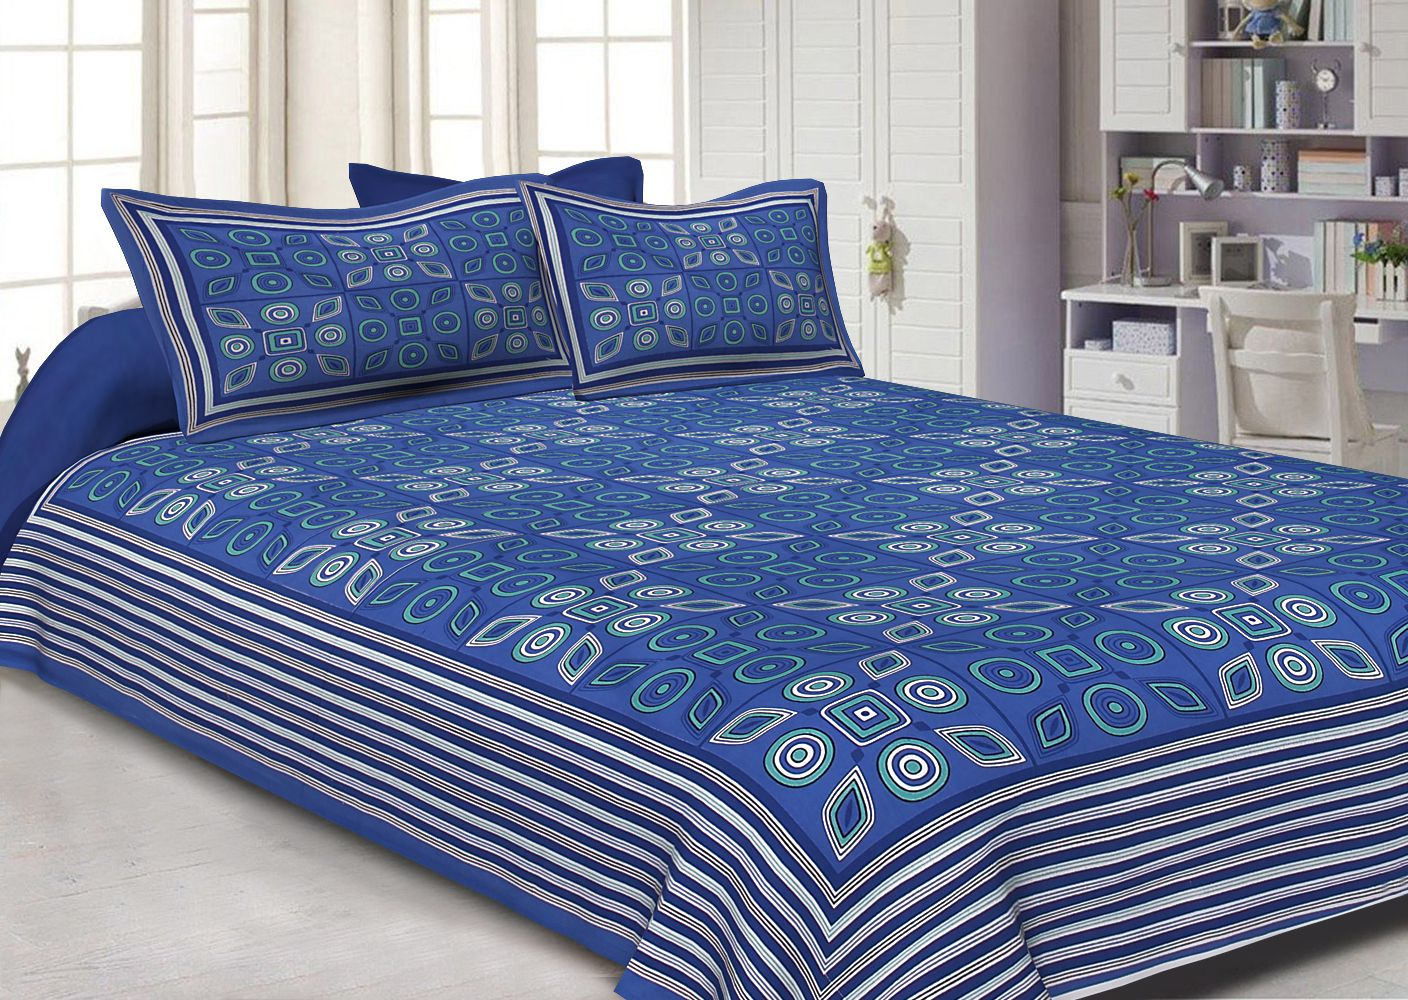 Blue Geometric Printed Cotton Double Bed Sheet